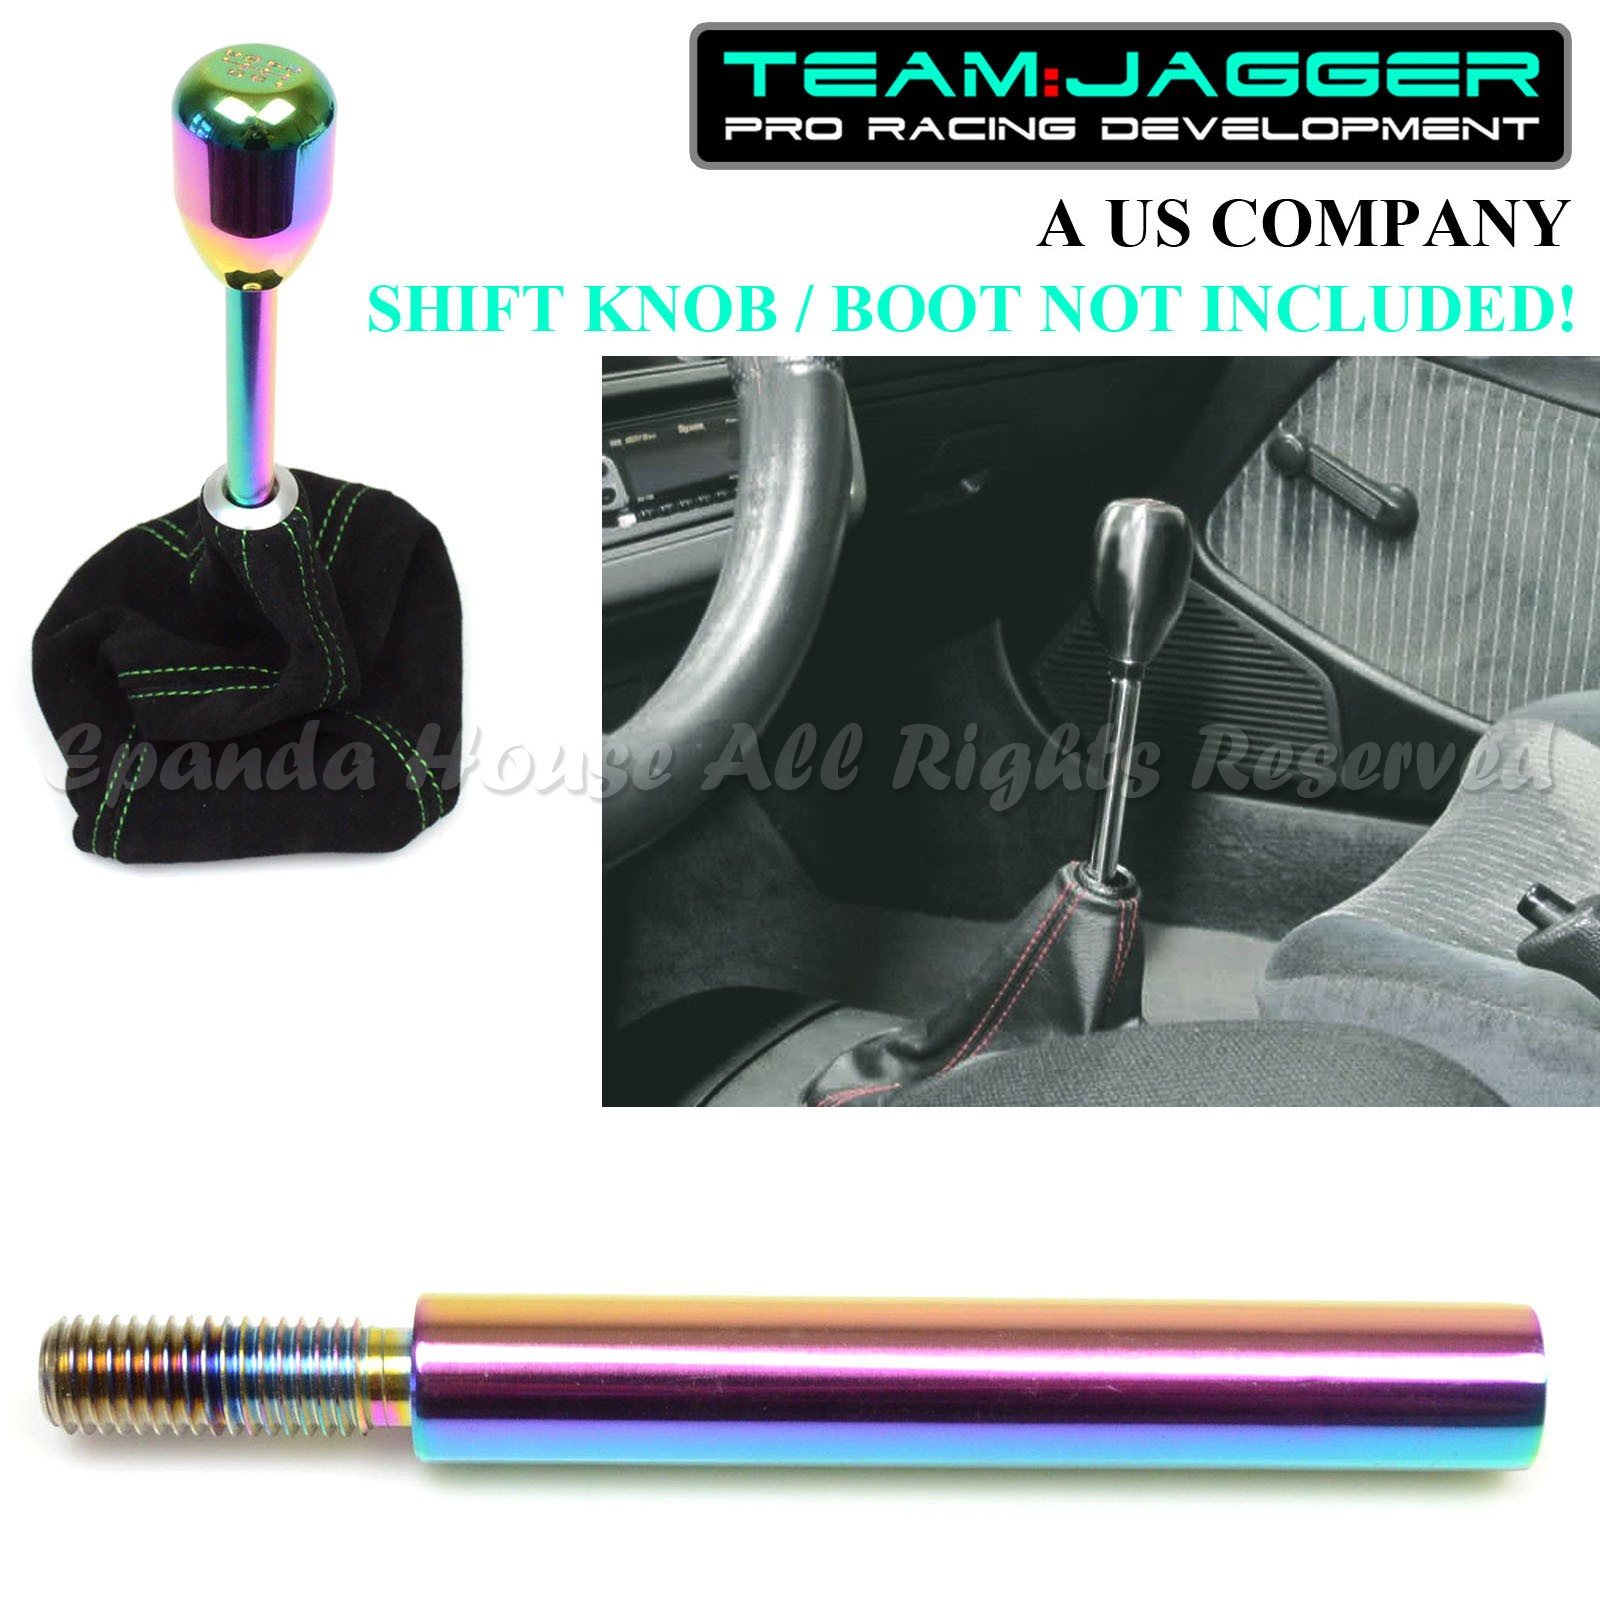 USA WHITE 5-SPEED METAL MANUAL GEAR SHIFT KNOB GREEN FOR JEEP DODGE M10 THREAD